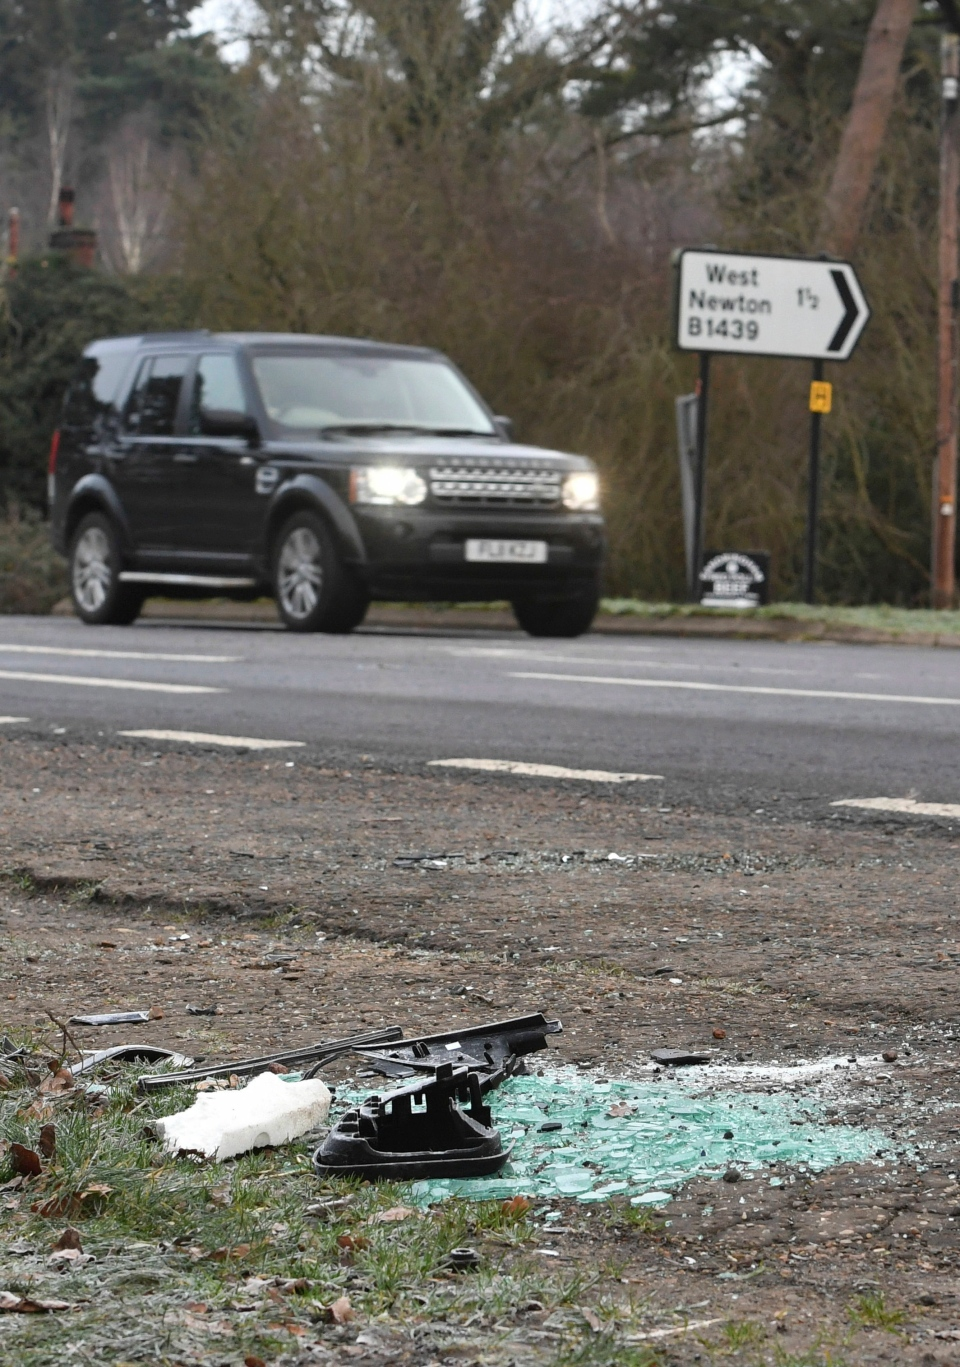 Broken glass and car parts on the road side near to the Sandringham Estate, England, where Prince Philip was involved in a road accident Thursday while he was driving, Friday Jan. 18, 2019. (John Stillwell/PA via AP)